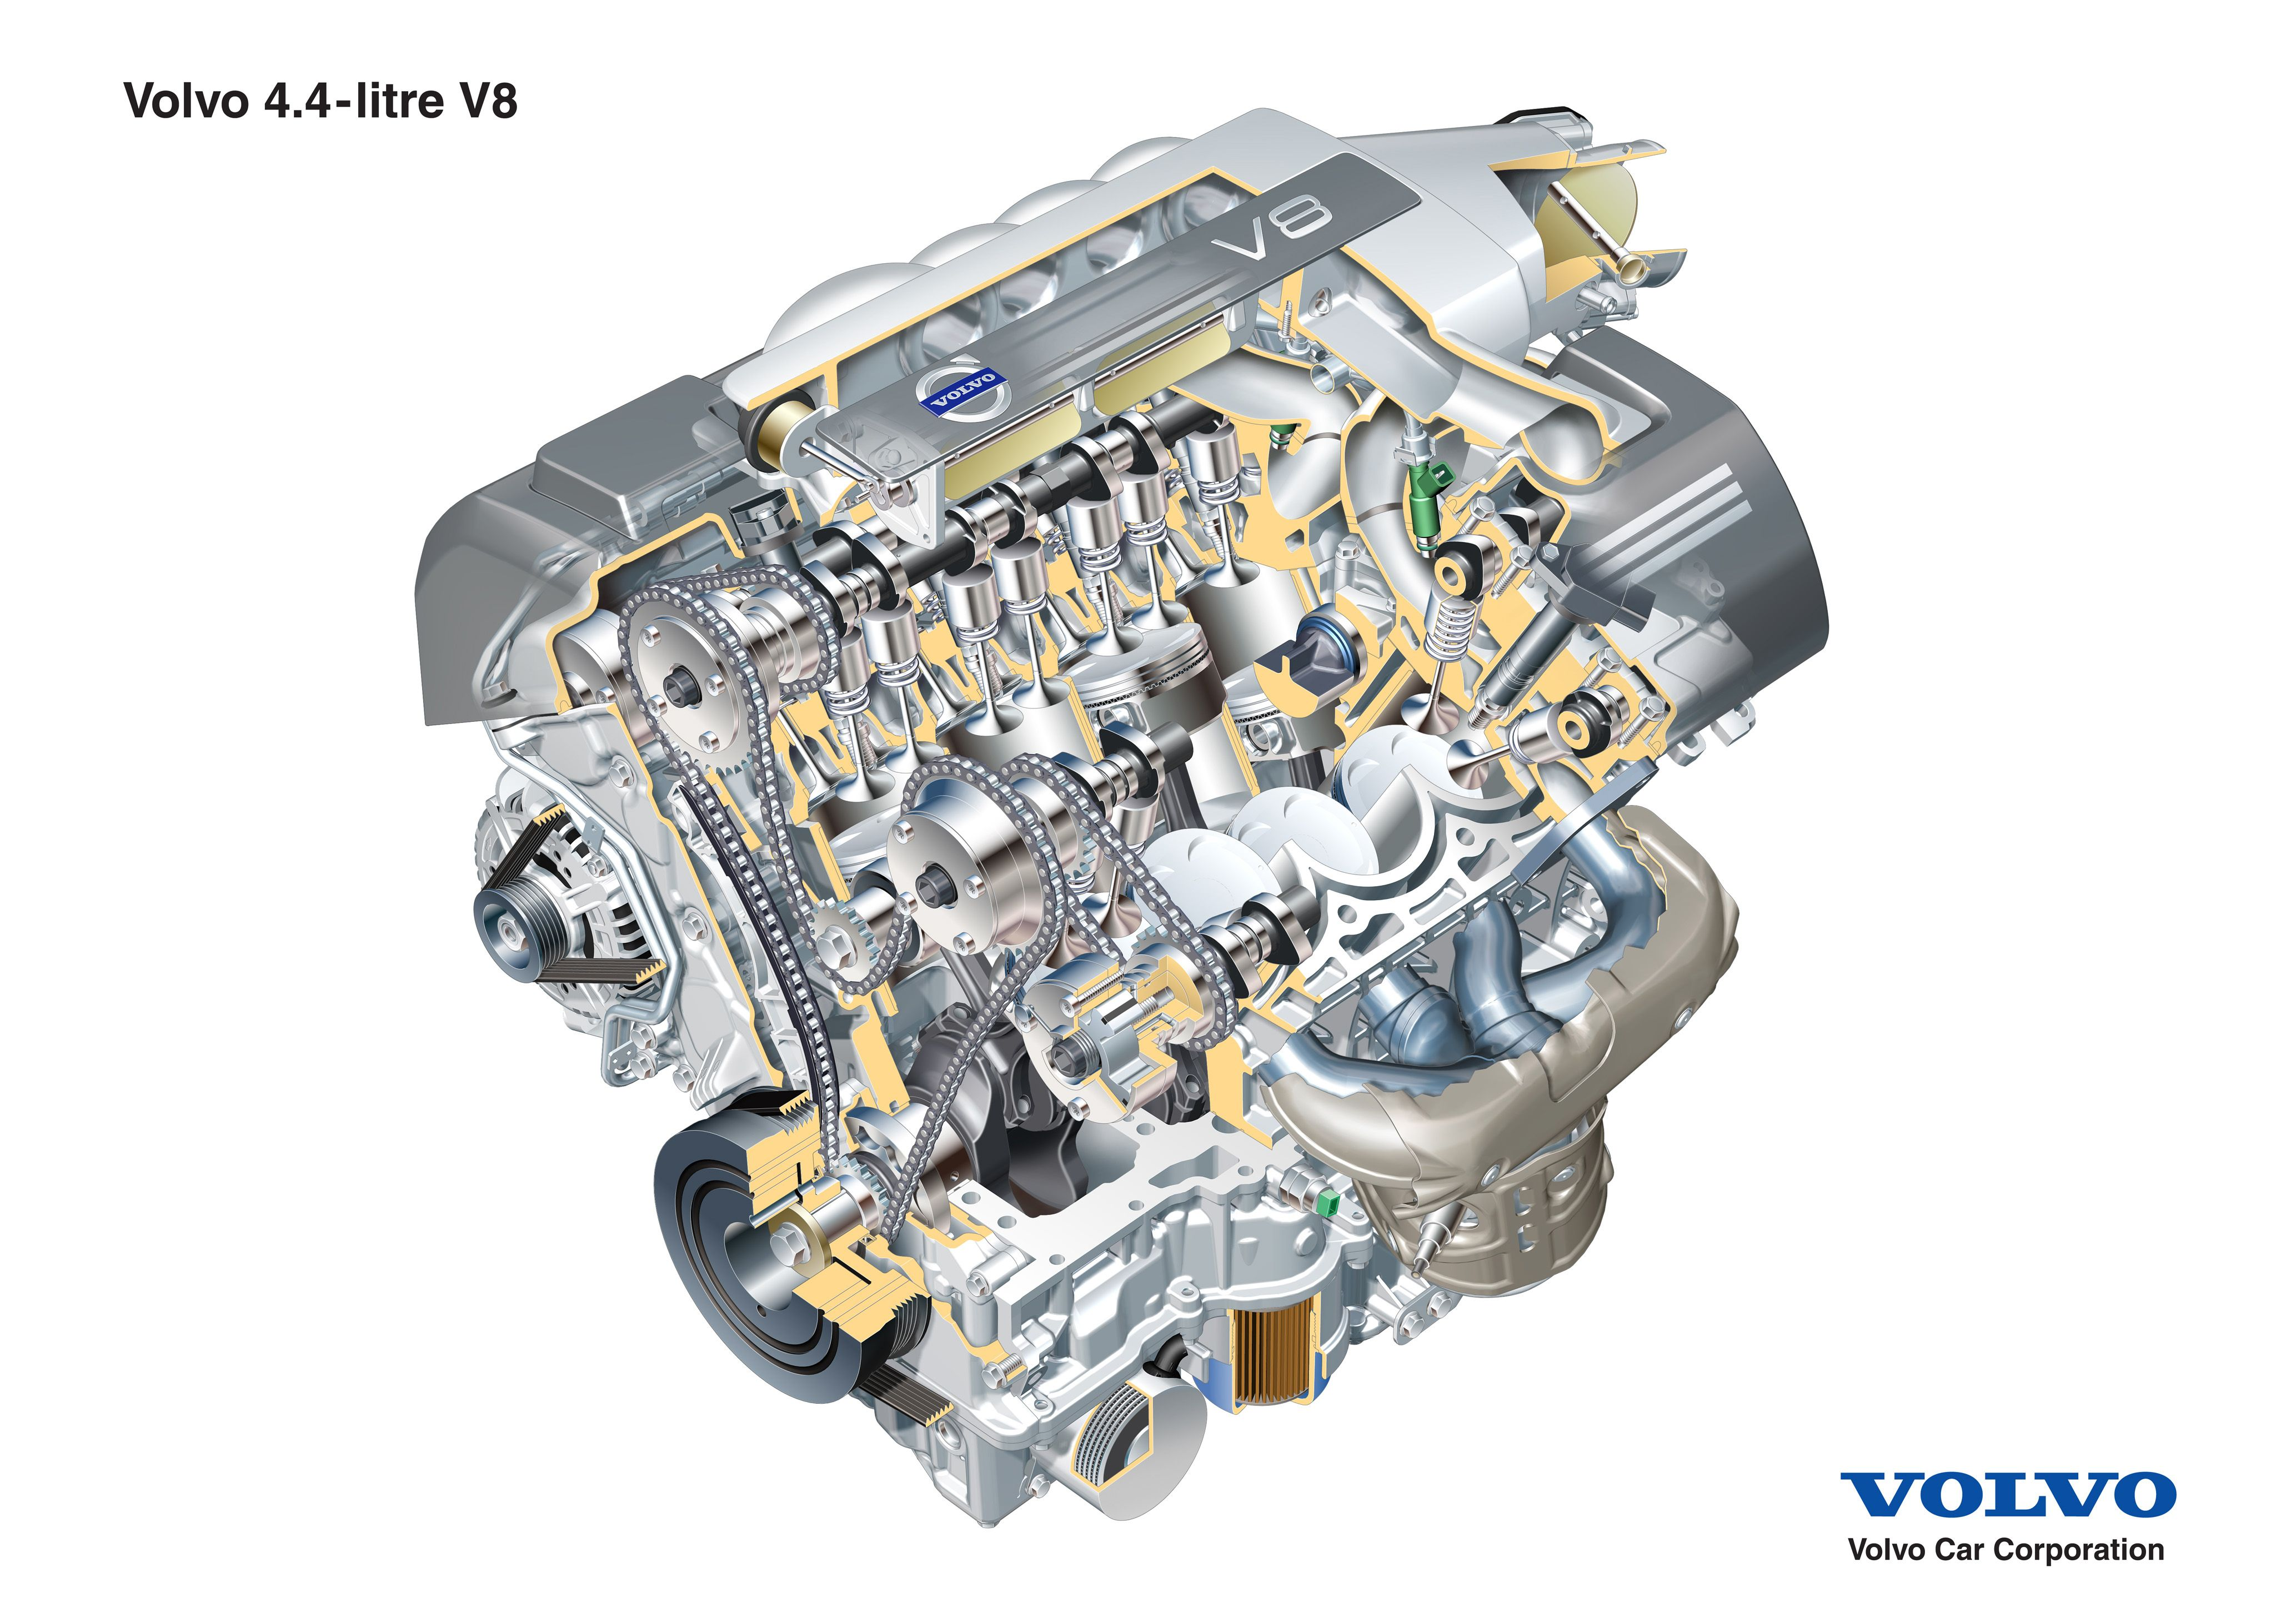 Volvo 4 4 Liter Dohc V 8, Built By Yamaha Type Naturally 2003 Volvo S60 Vacuum Lines 2005 Volvo S40 T5 Engine Diagram Ford Fiesta Engine Diagram At IT-Energia.com